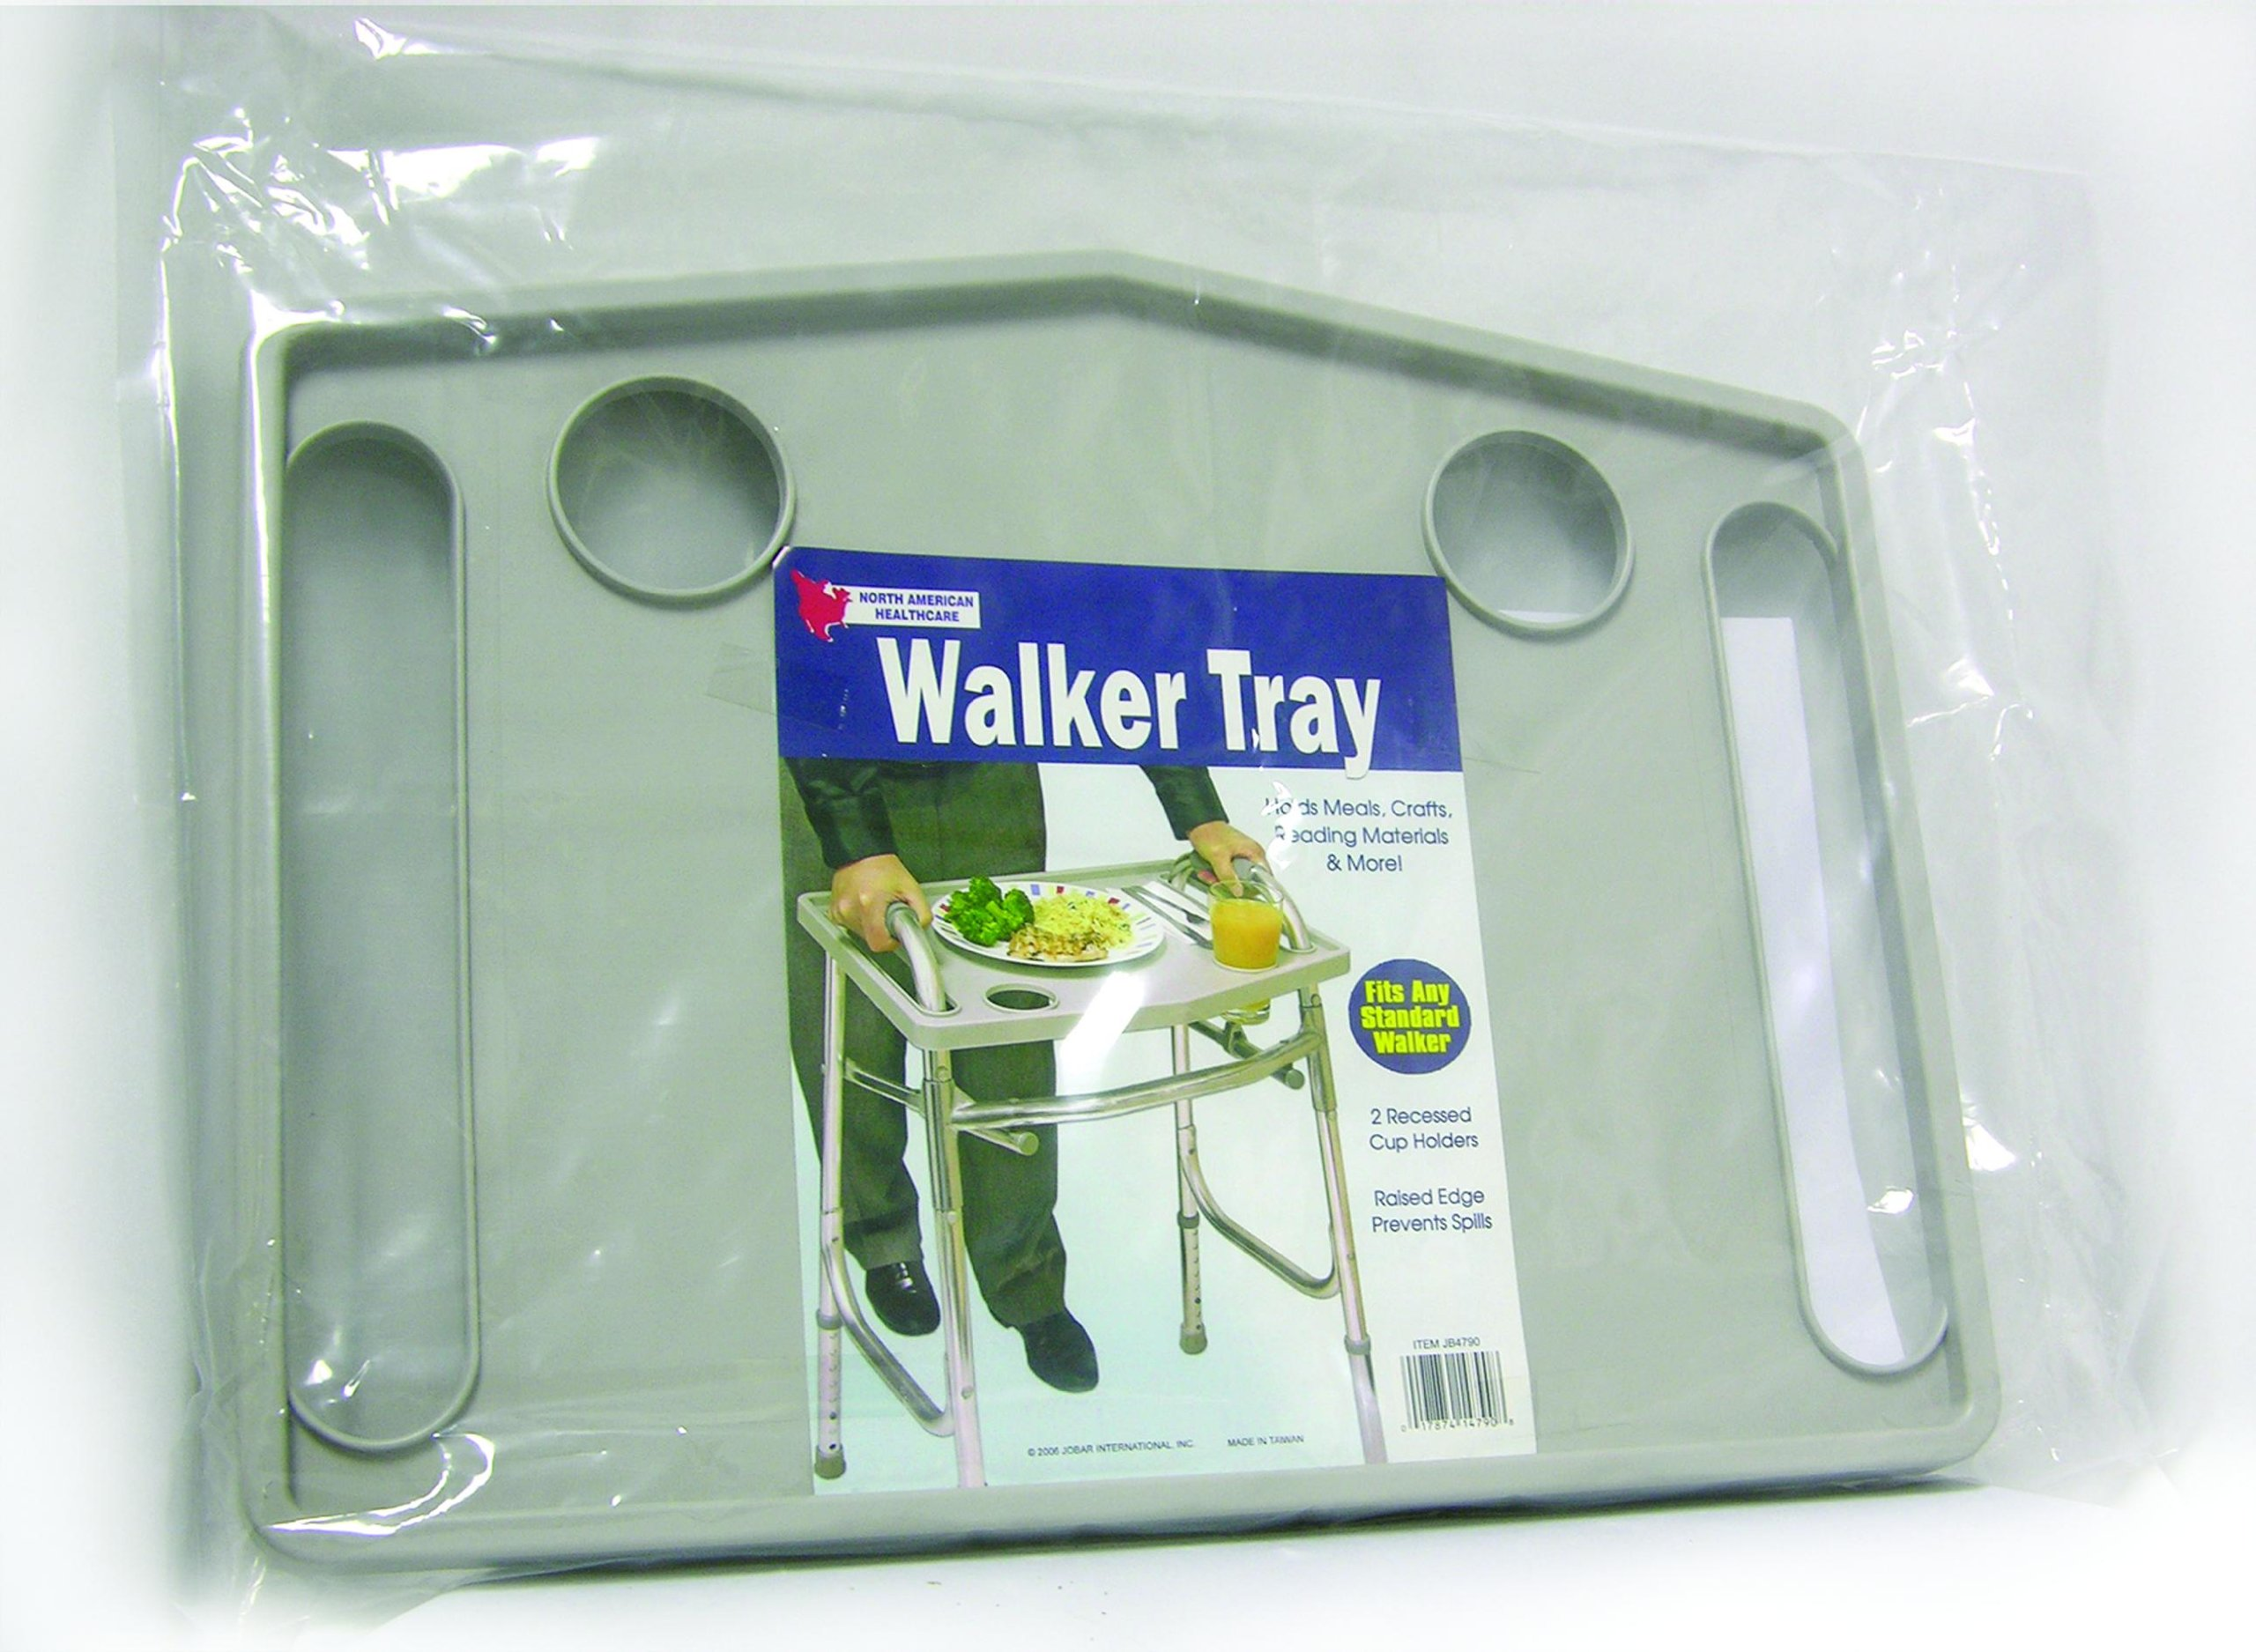 Walker Tray by Jobar International